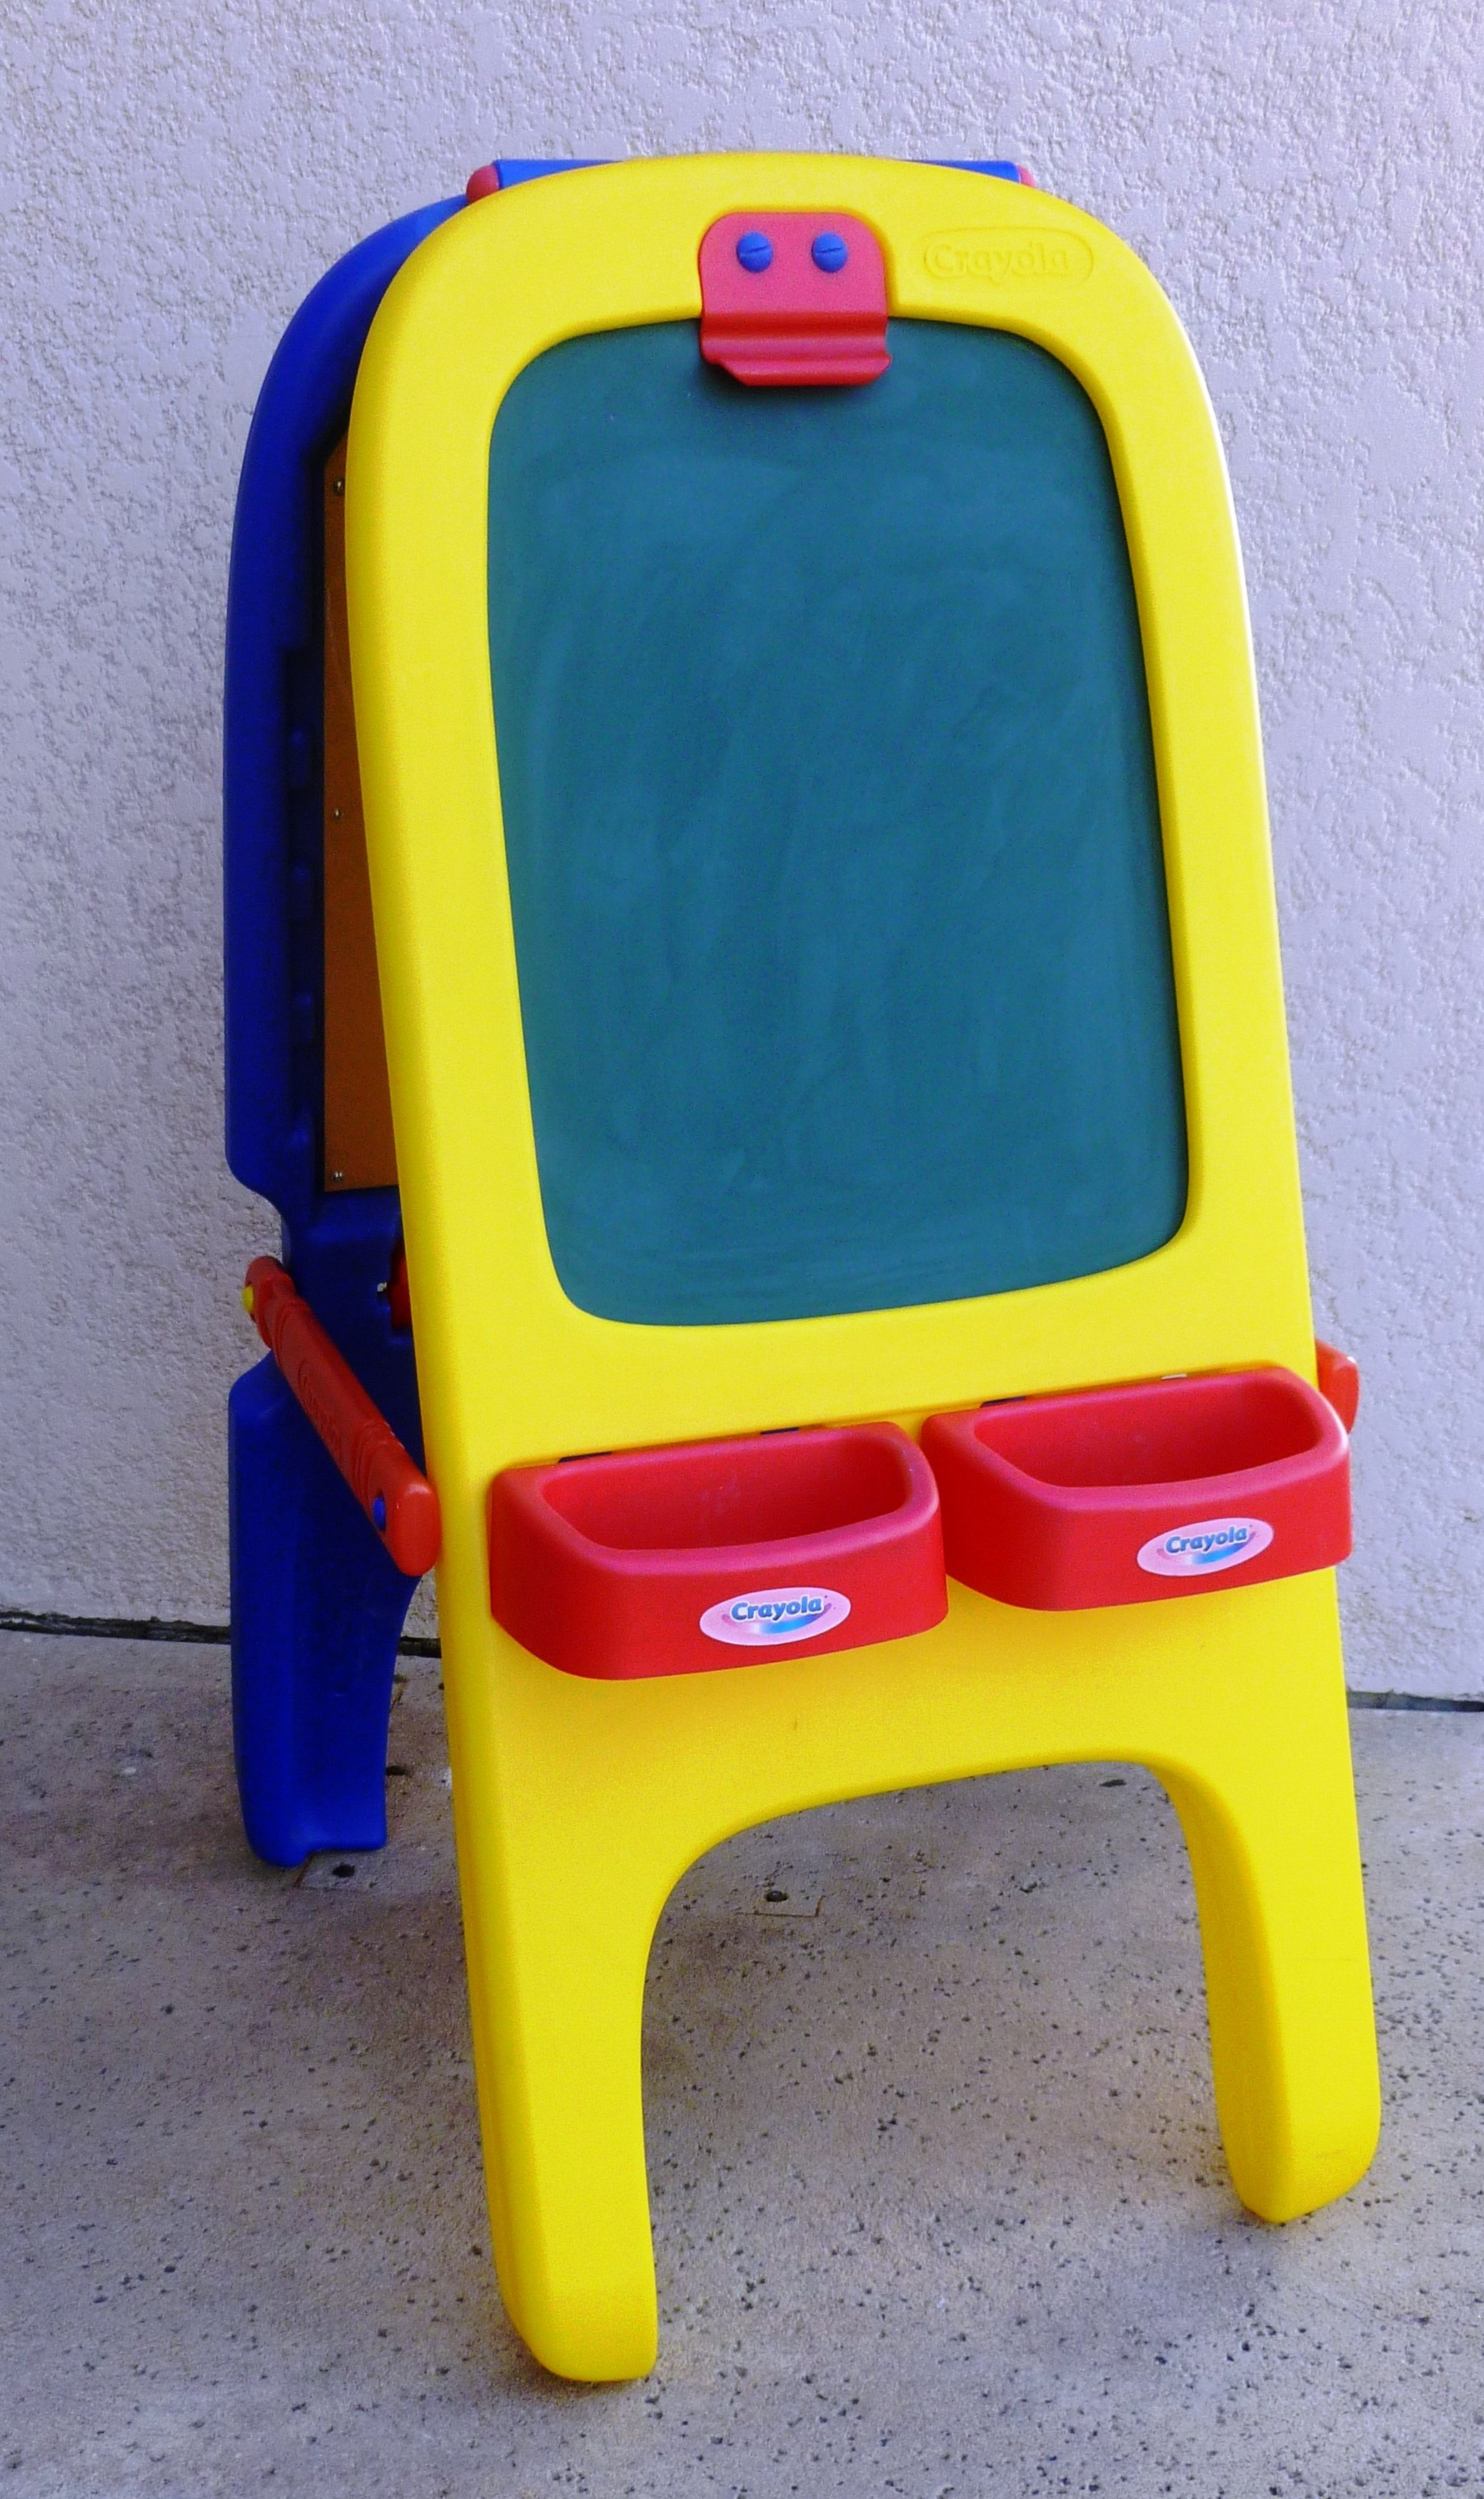 Crayola Magnetic Double Sided Easel The Double Easel Offers A